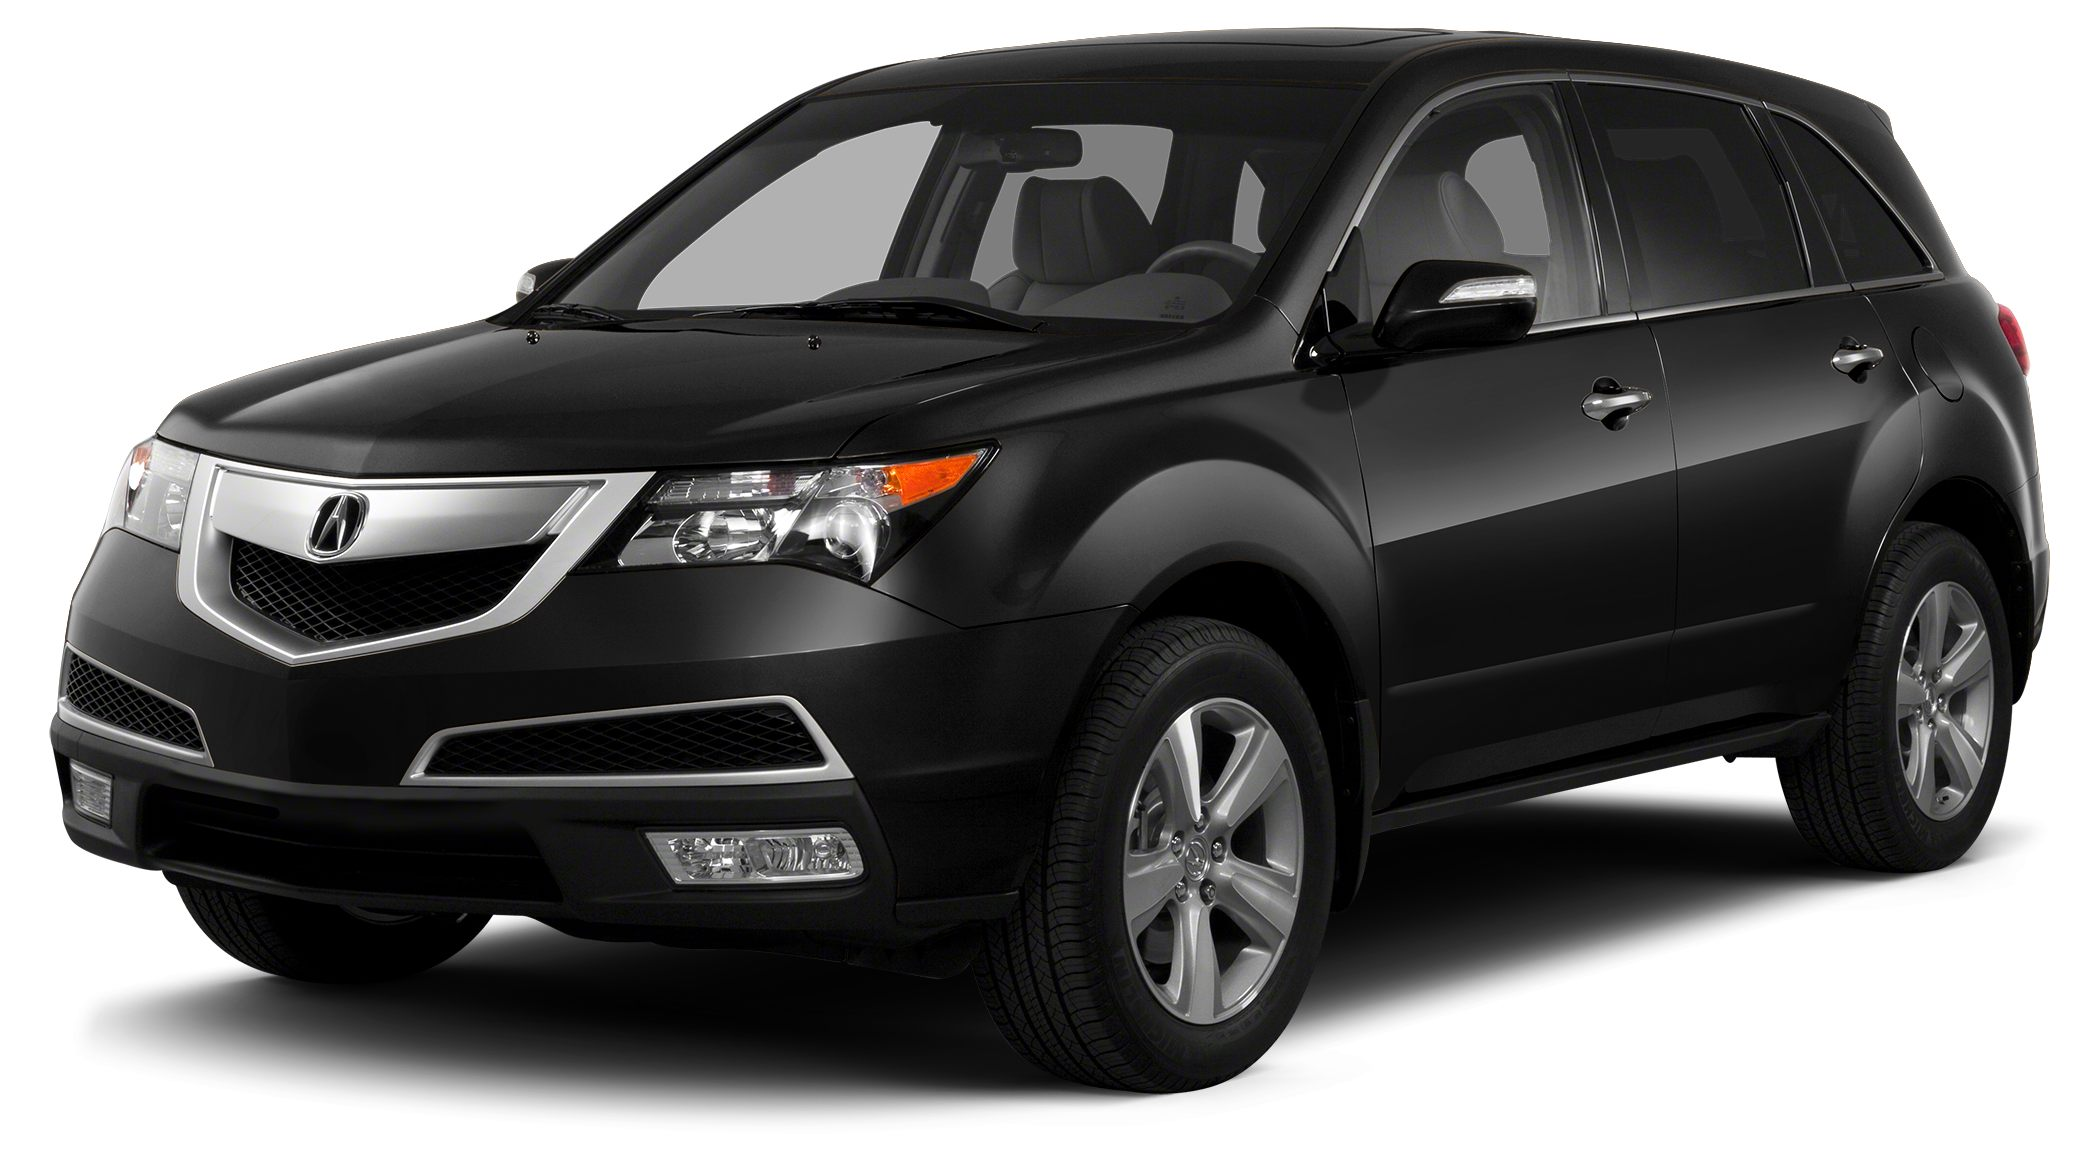 2013 Acura MDX 37 Miles 46613Color Crystal Black Pearl Stock J15571A VIN 2HNYD2H27DH504615